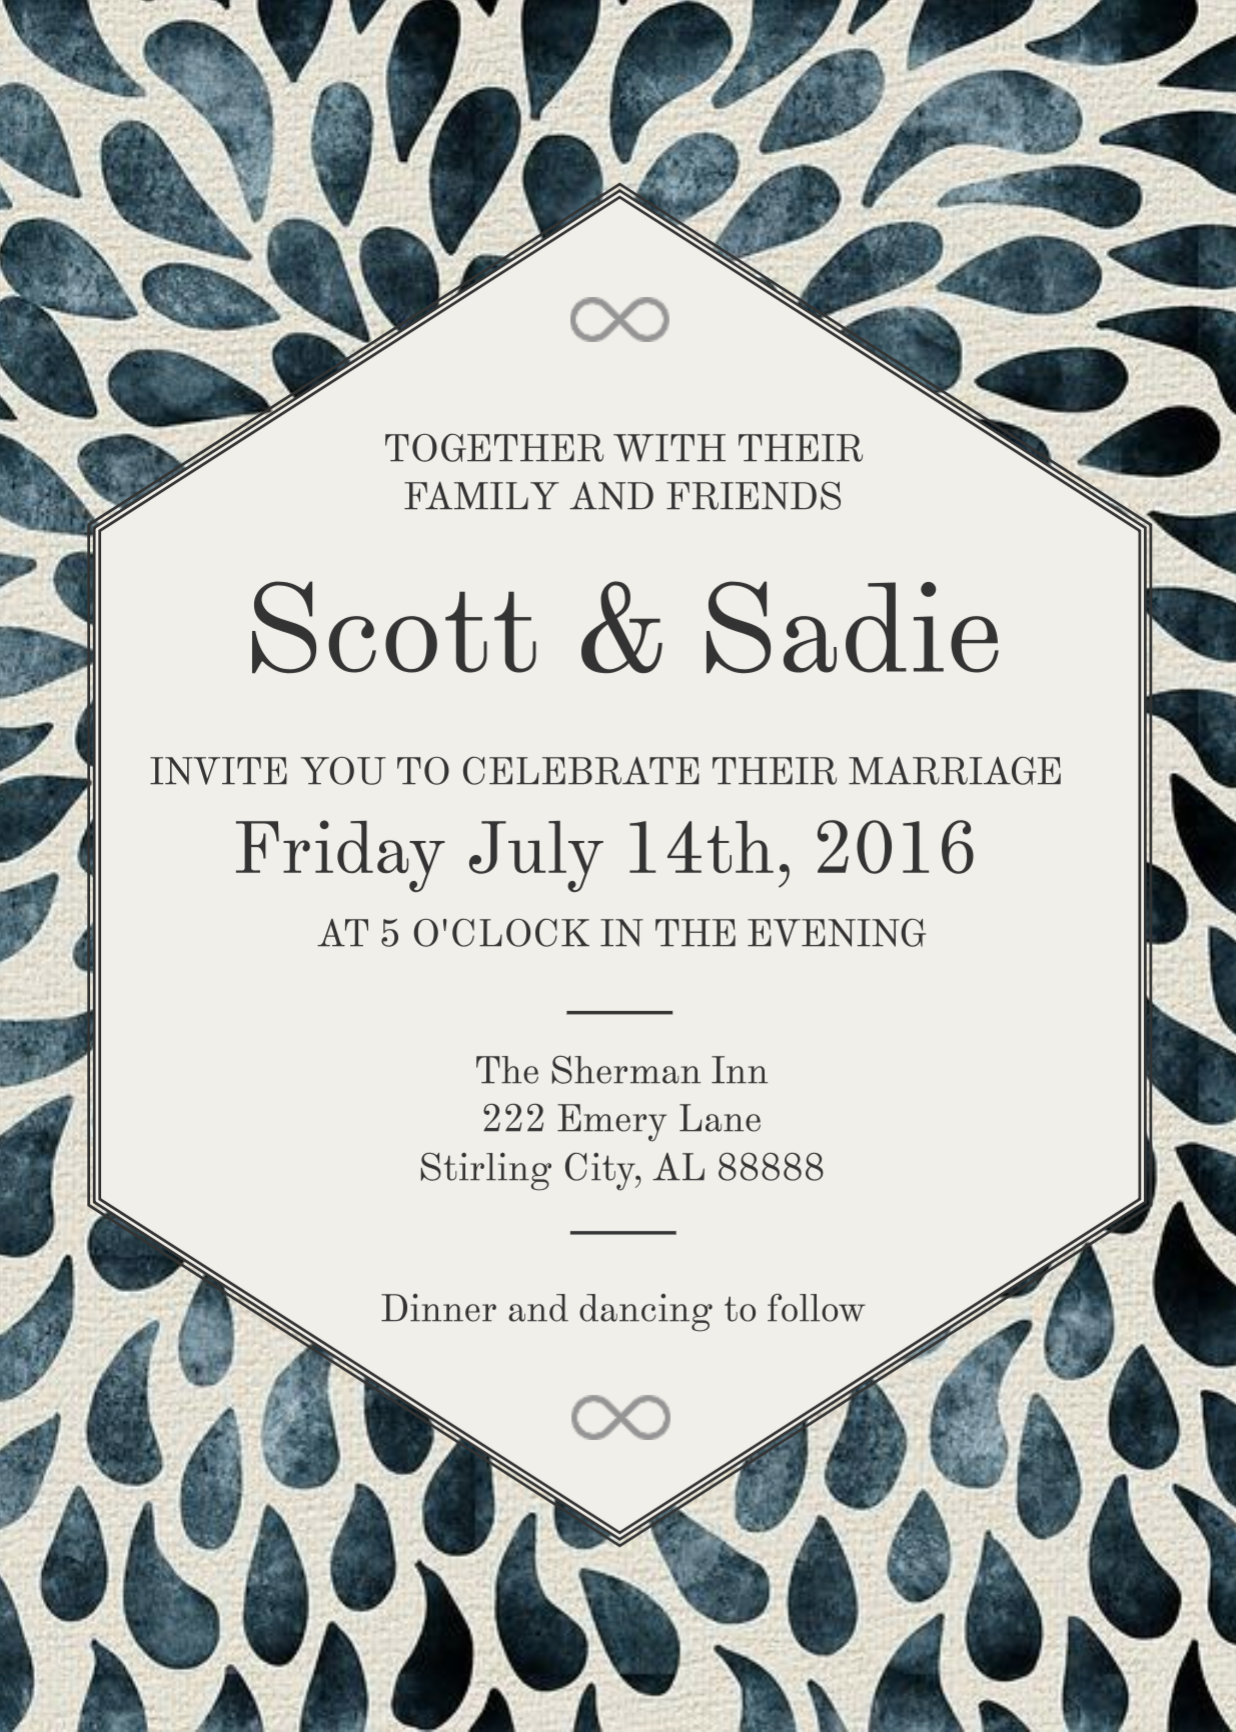 rsvp wedding invitation 5x7 free invitation templates